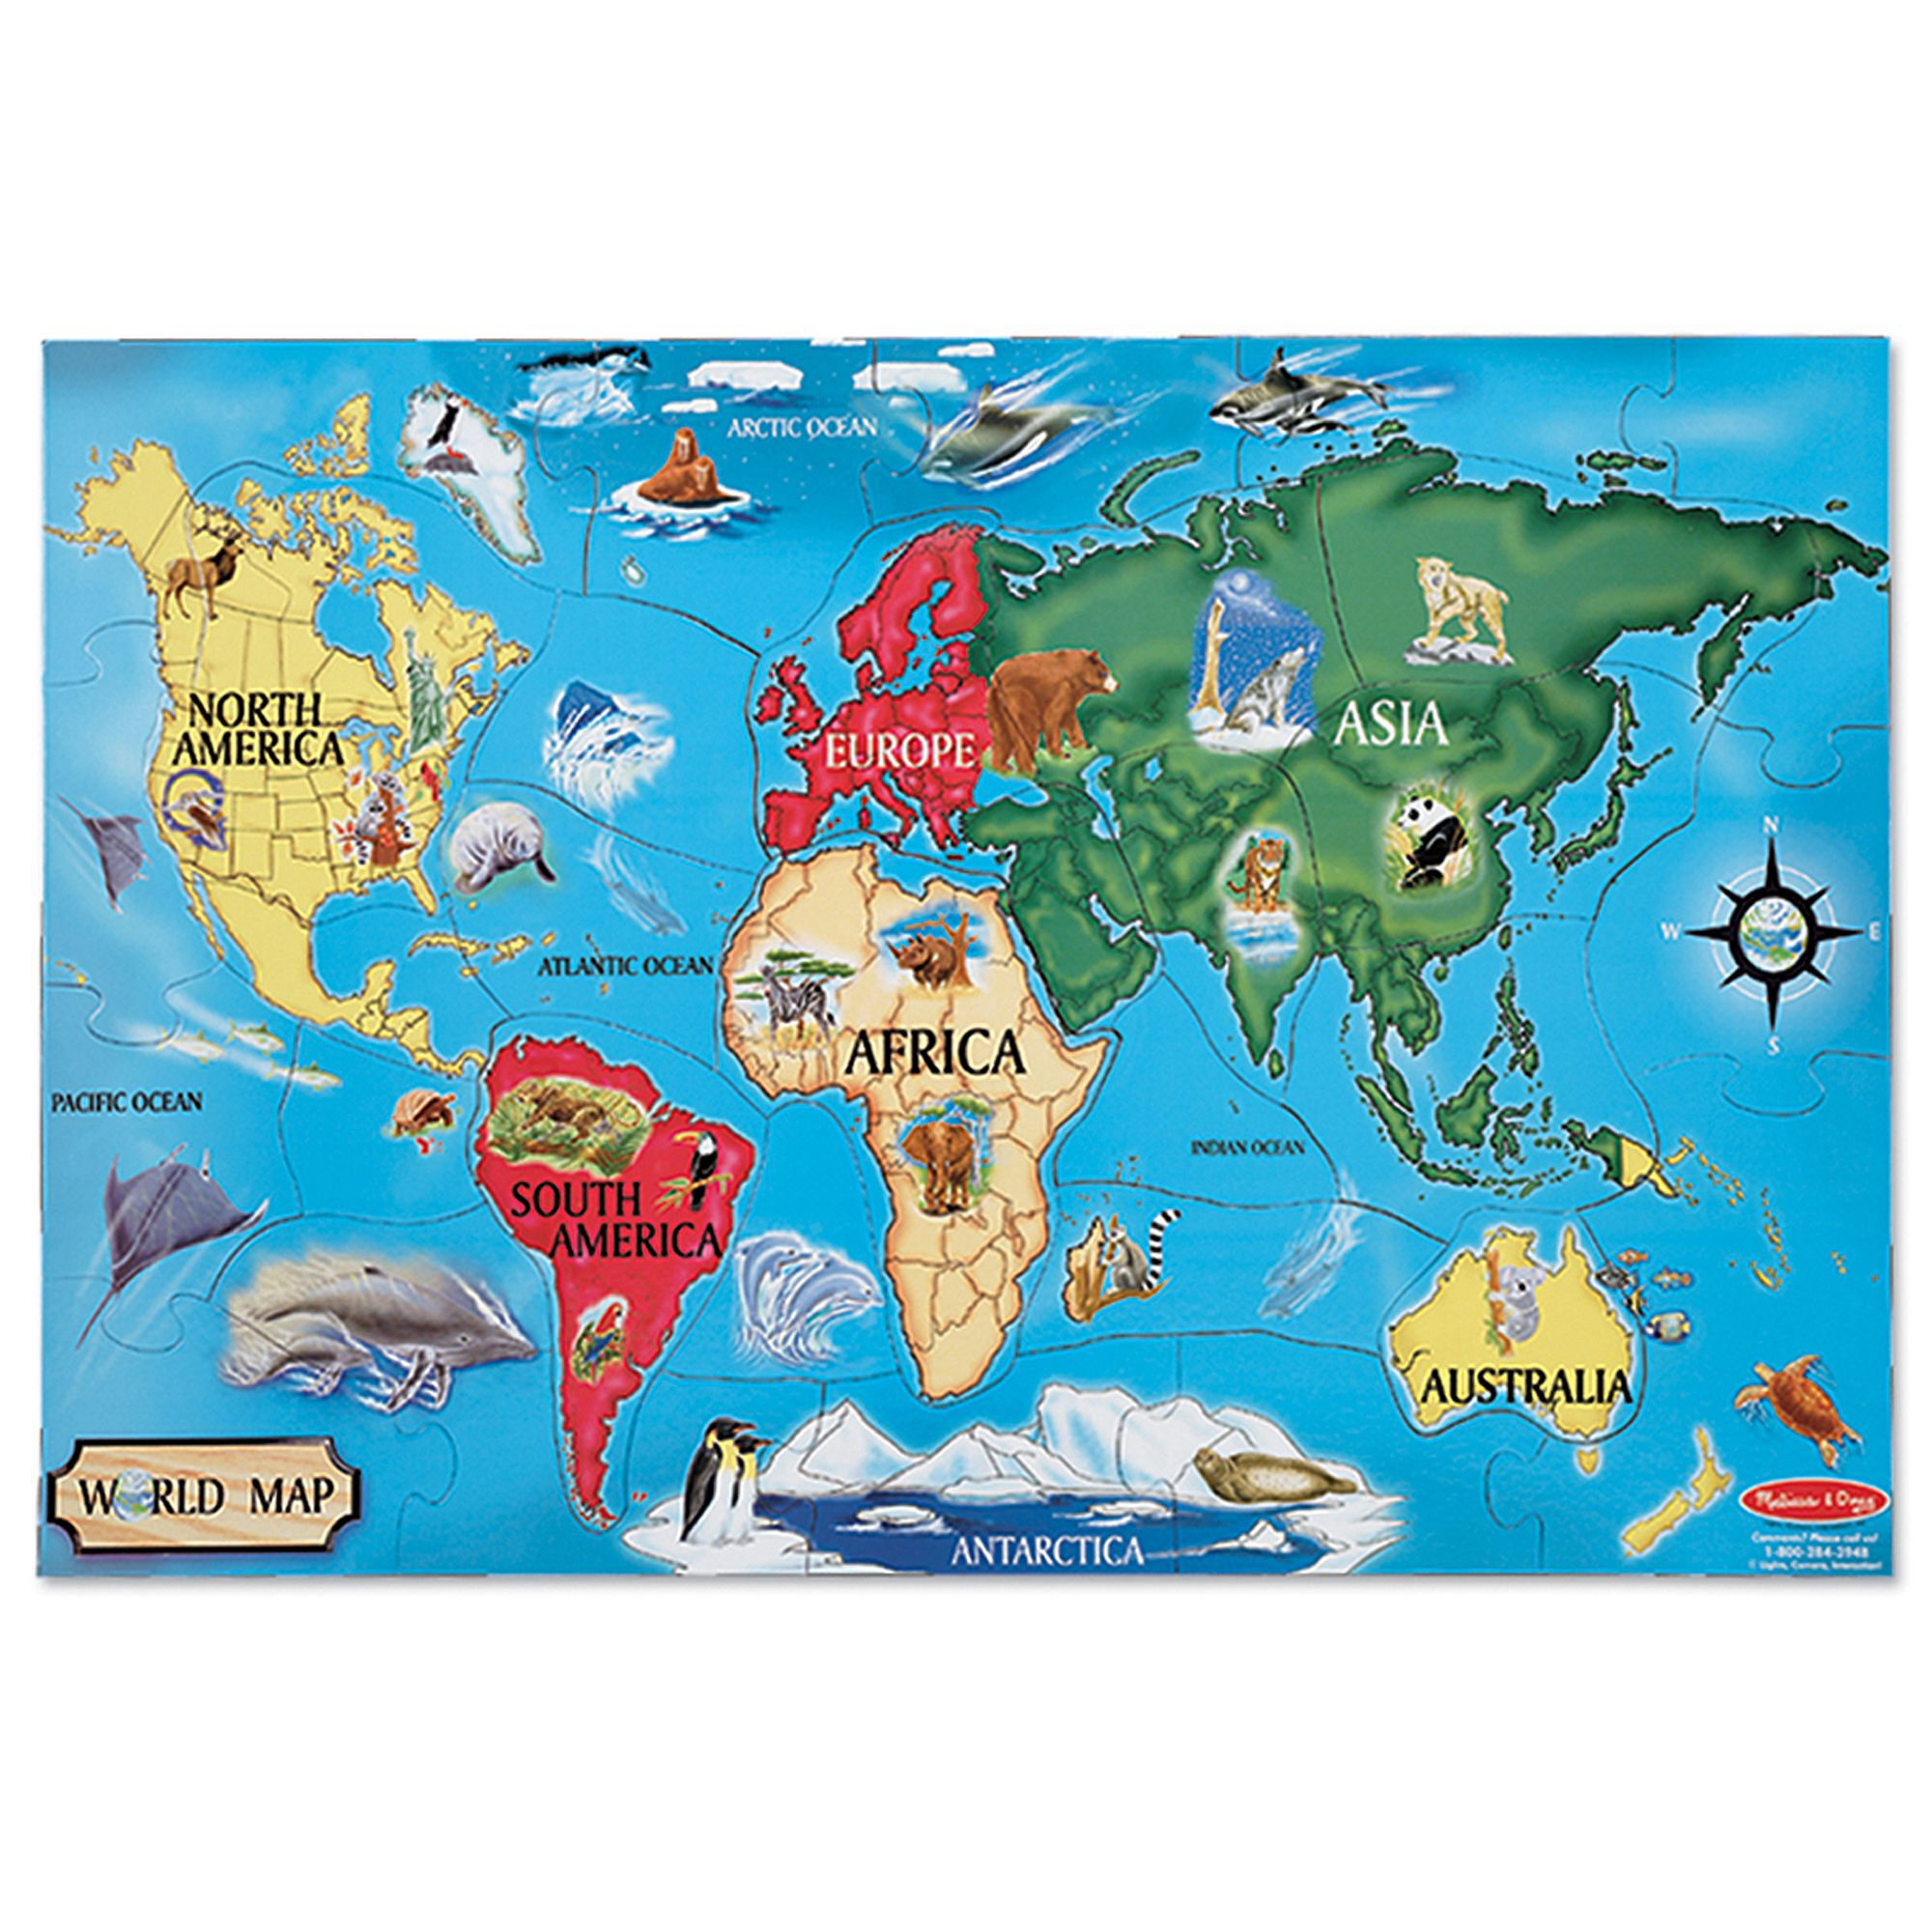 Verdes USA MAP Foam Puzzle Floor Puzzles kcsinc.net